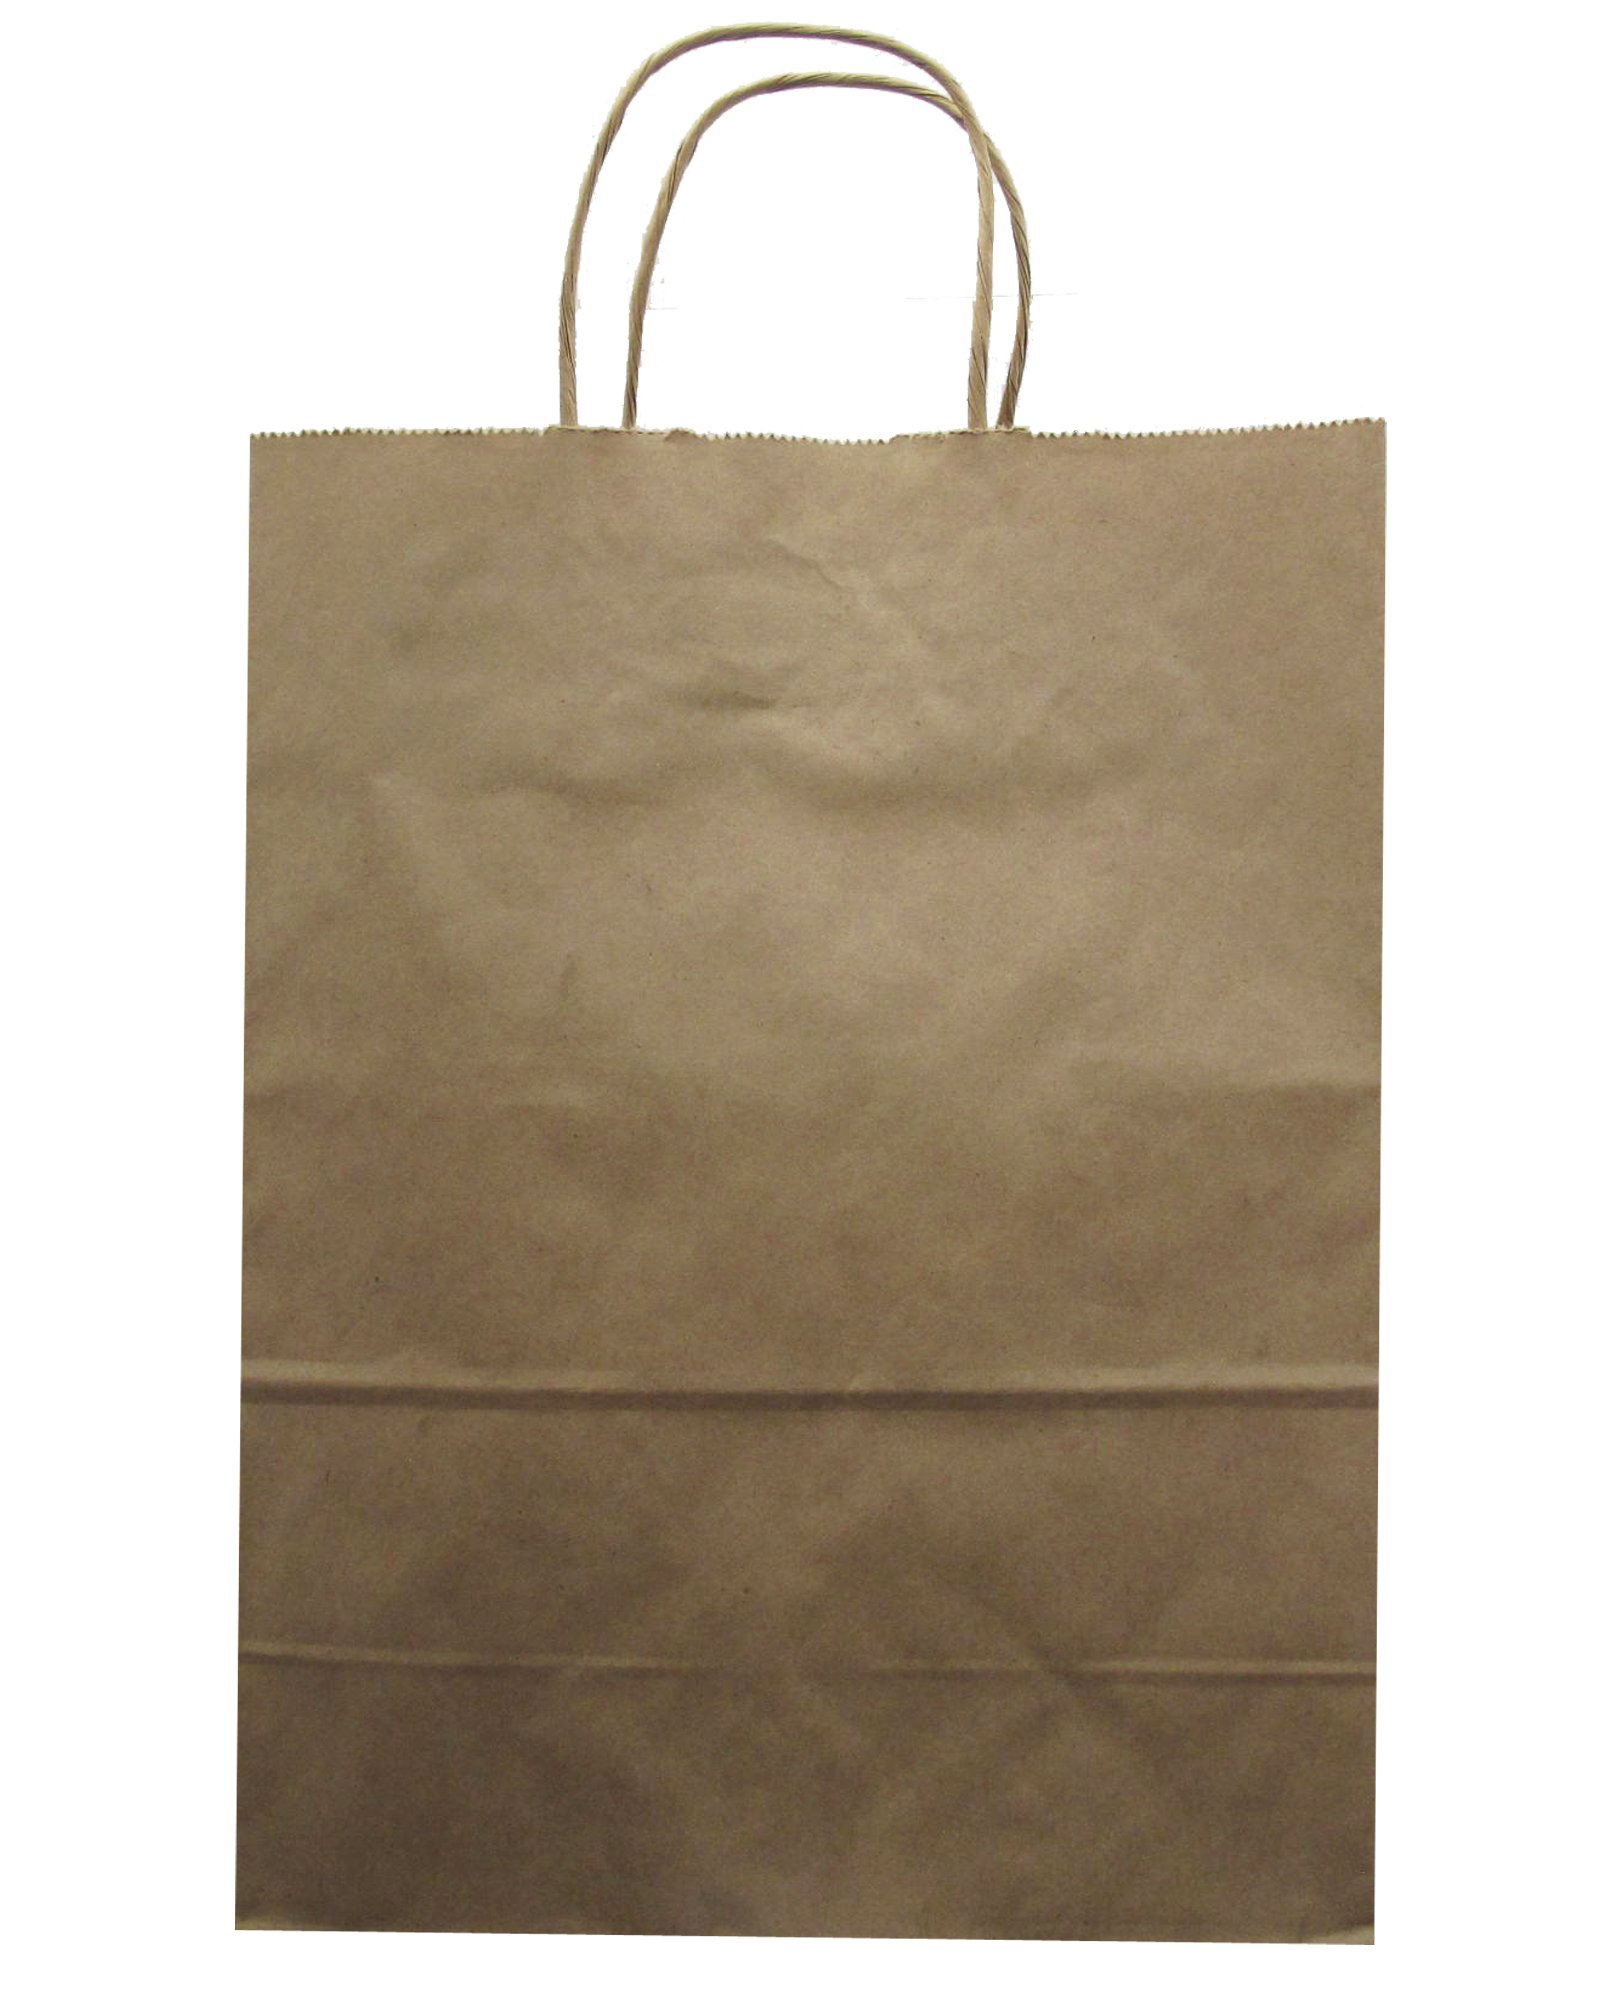 Jillson Roberts Bulk Medium Recycled Kraft Bags Available in 13 Colors, Natural, 250-Count (BMK918)